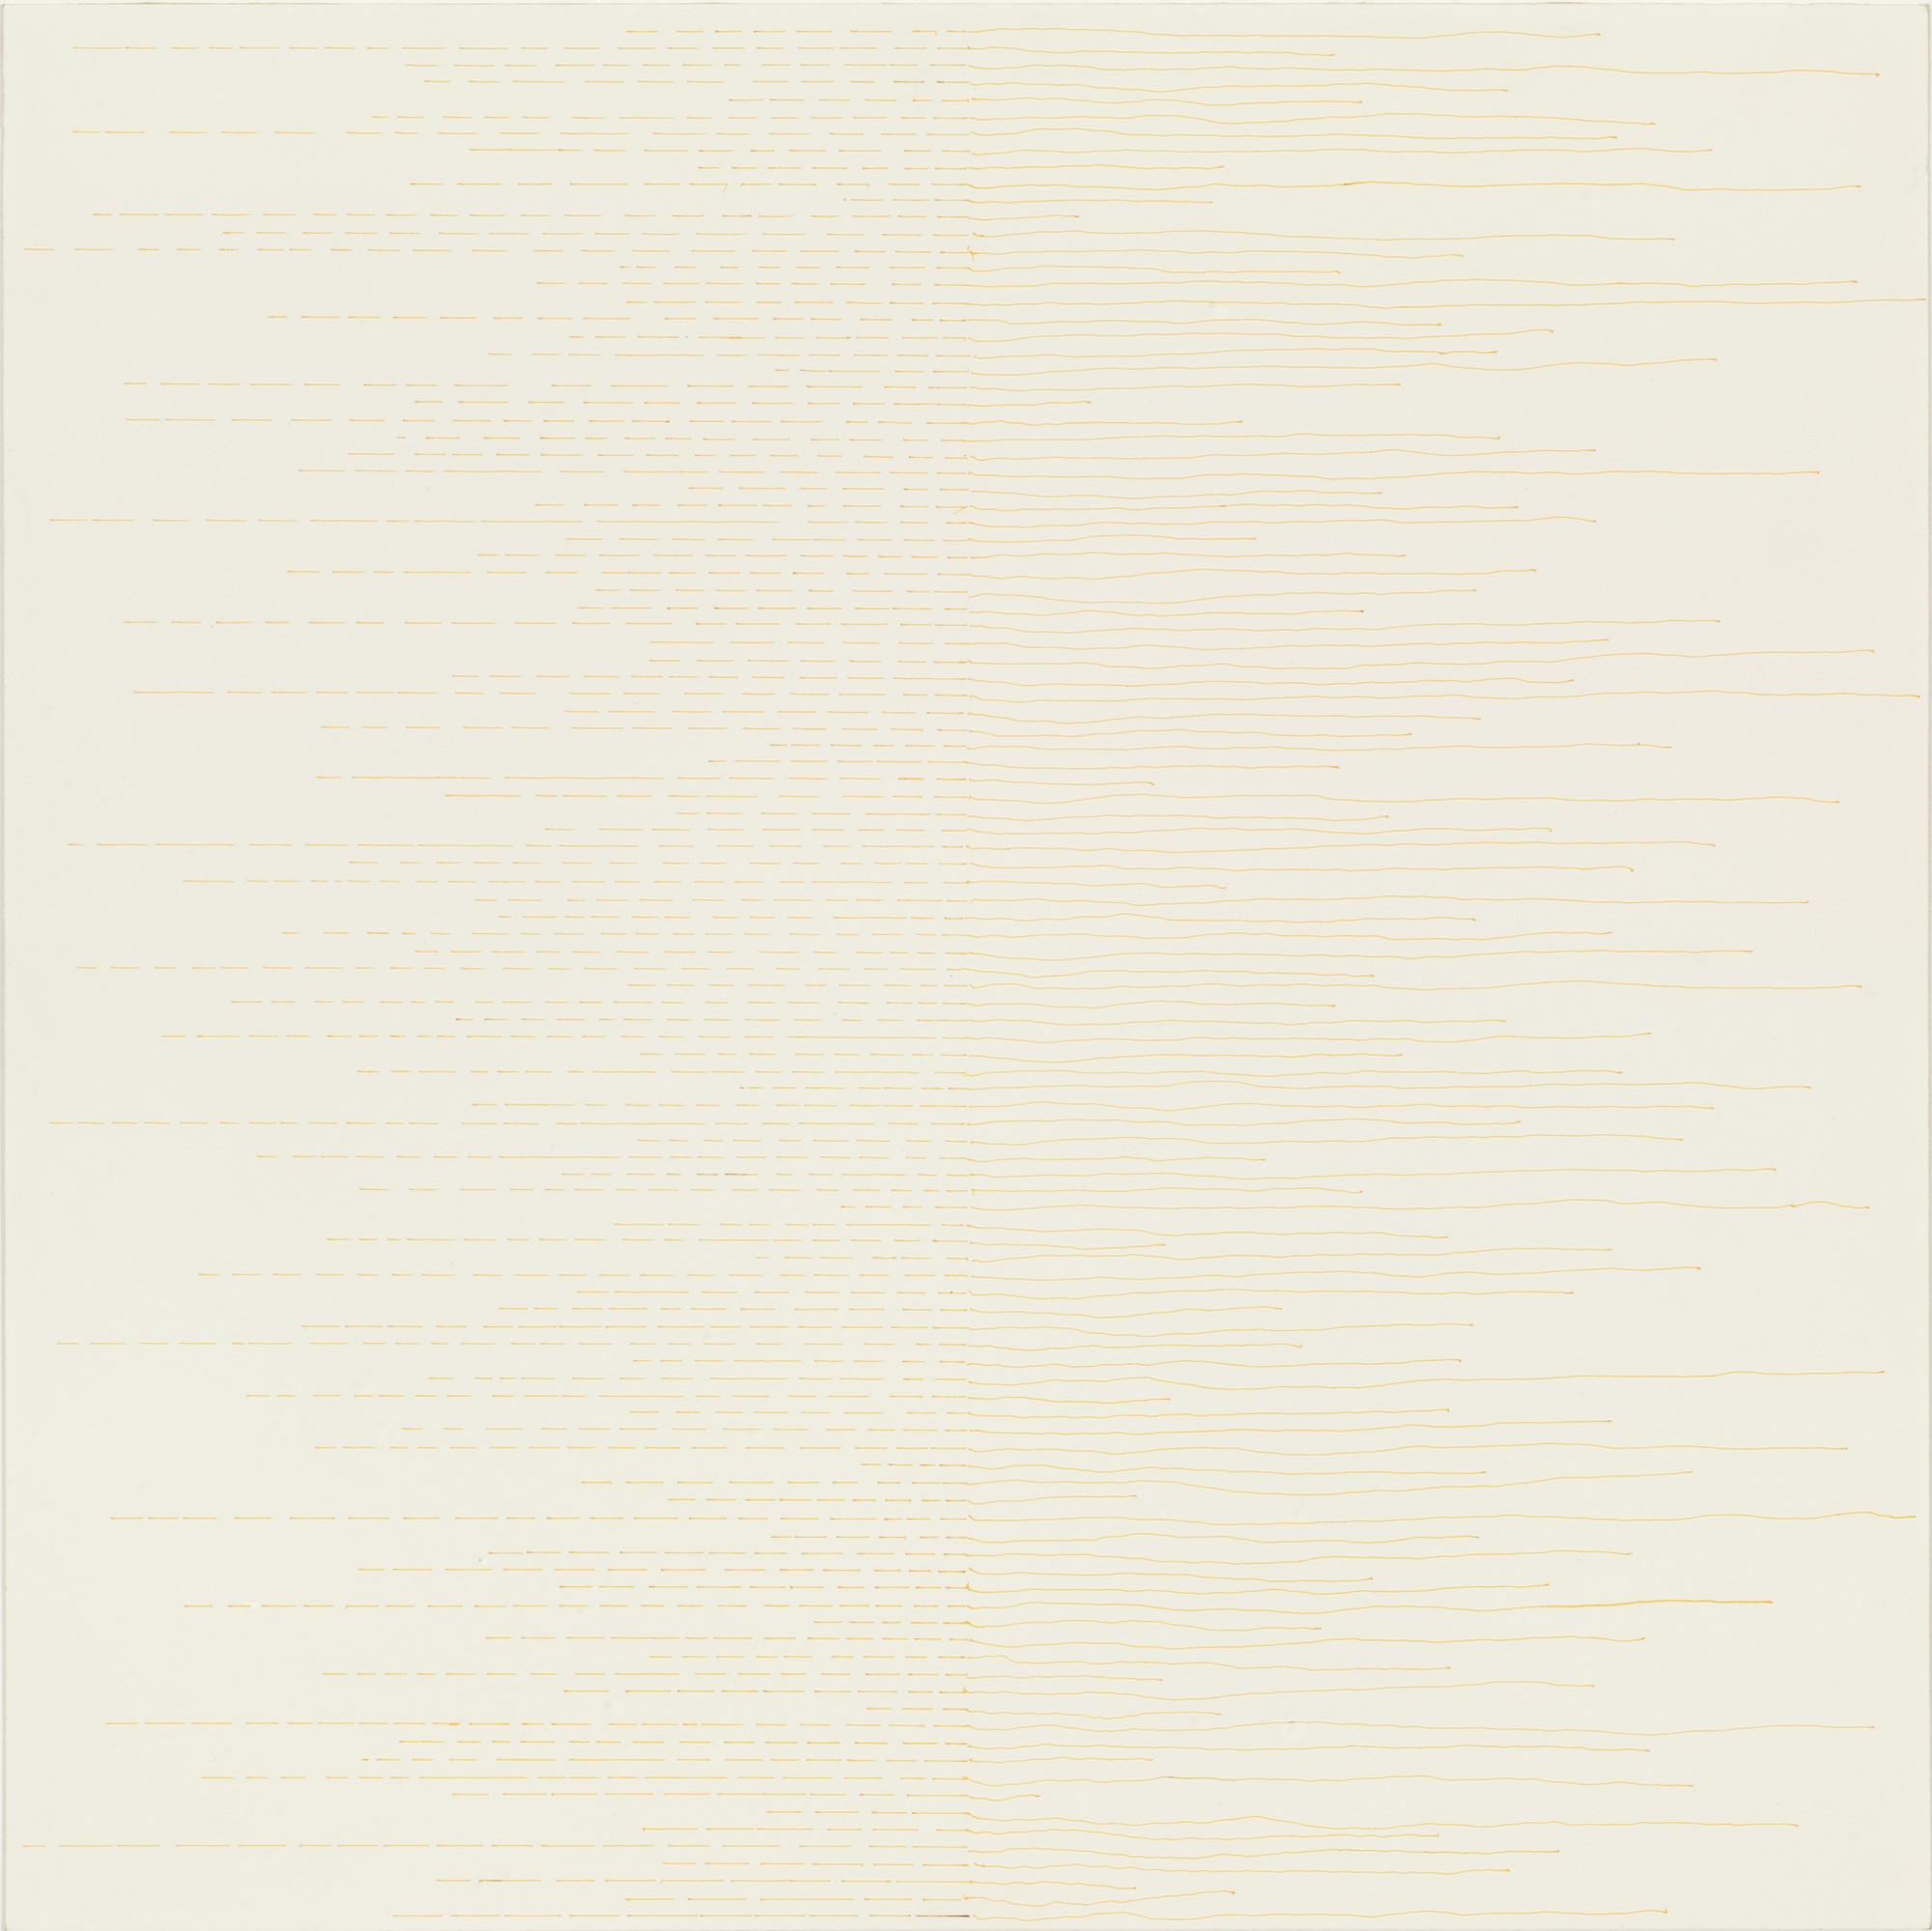 Sol LeWitt. Yellow Lines from the Center. 1972